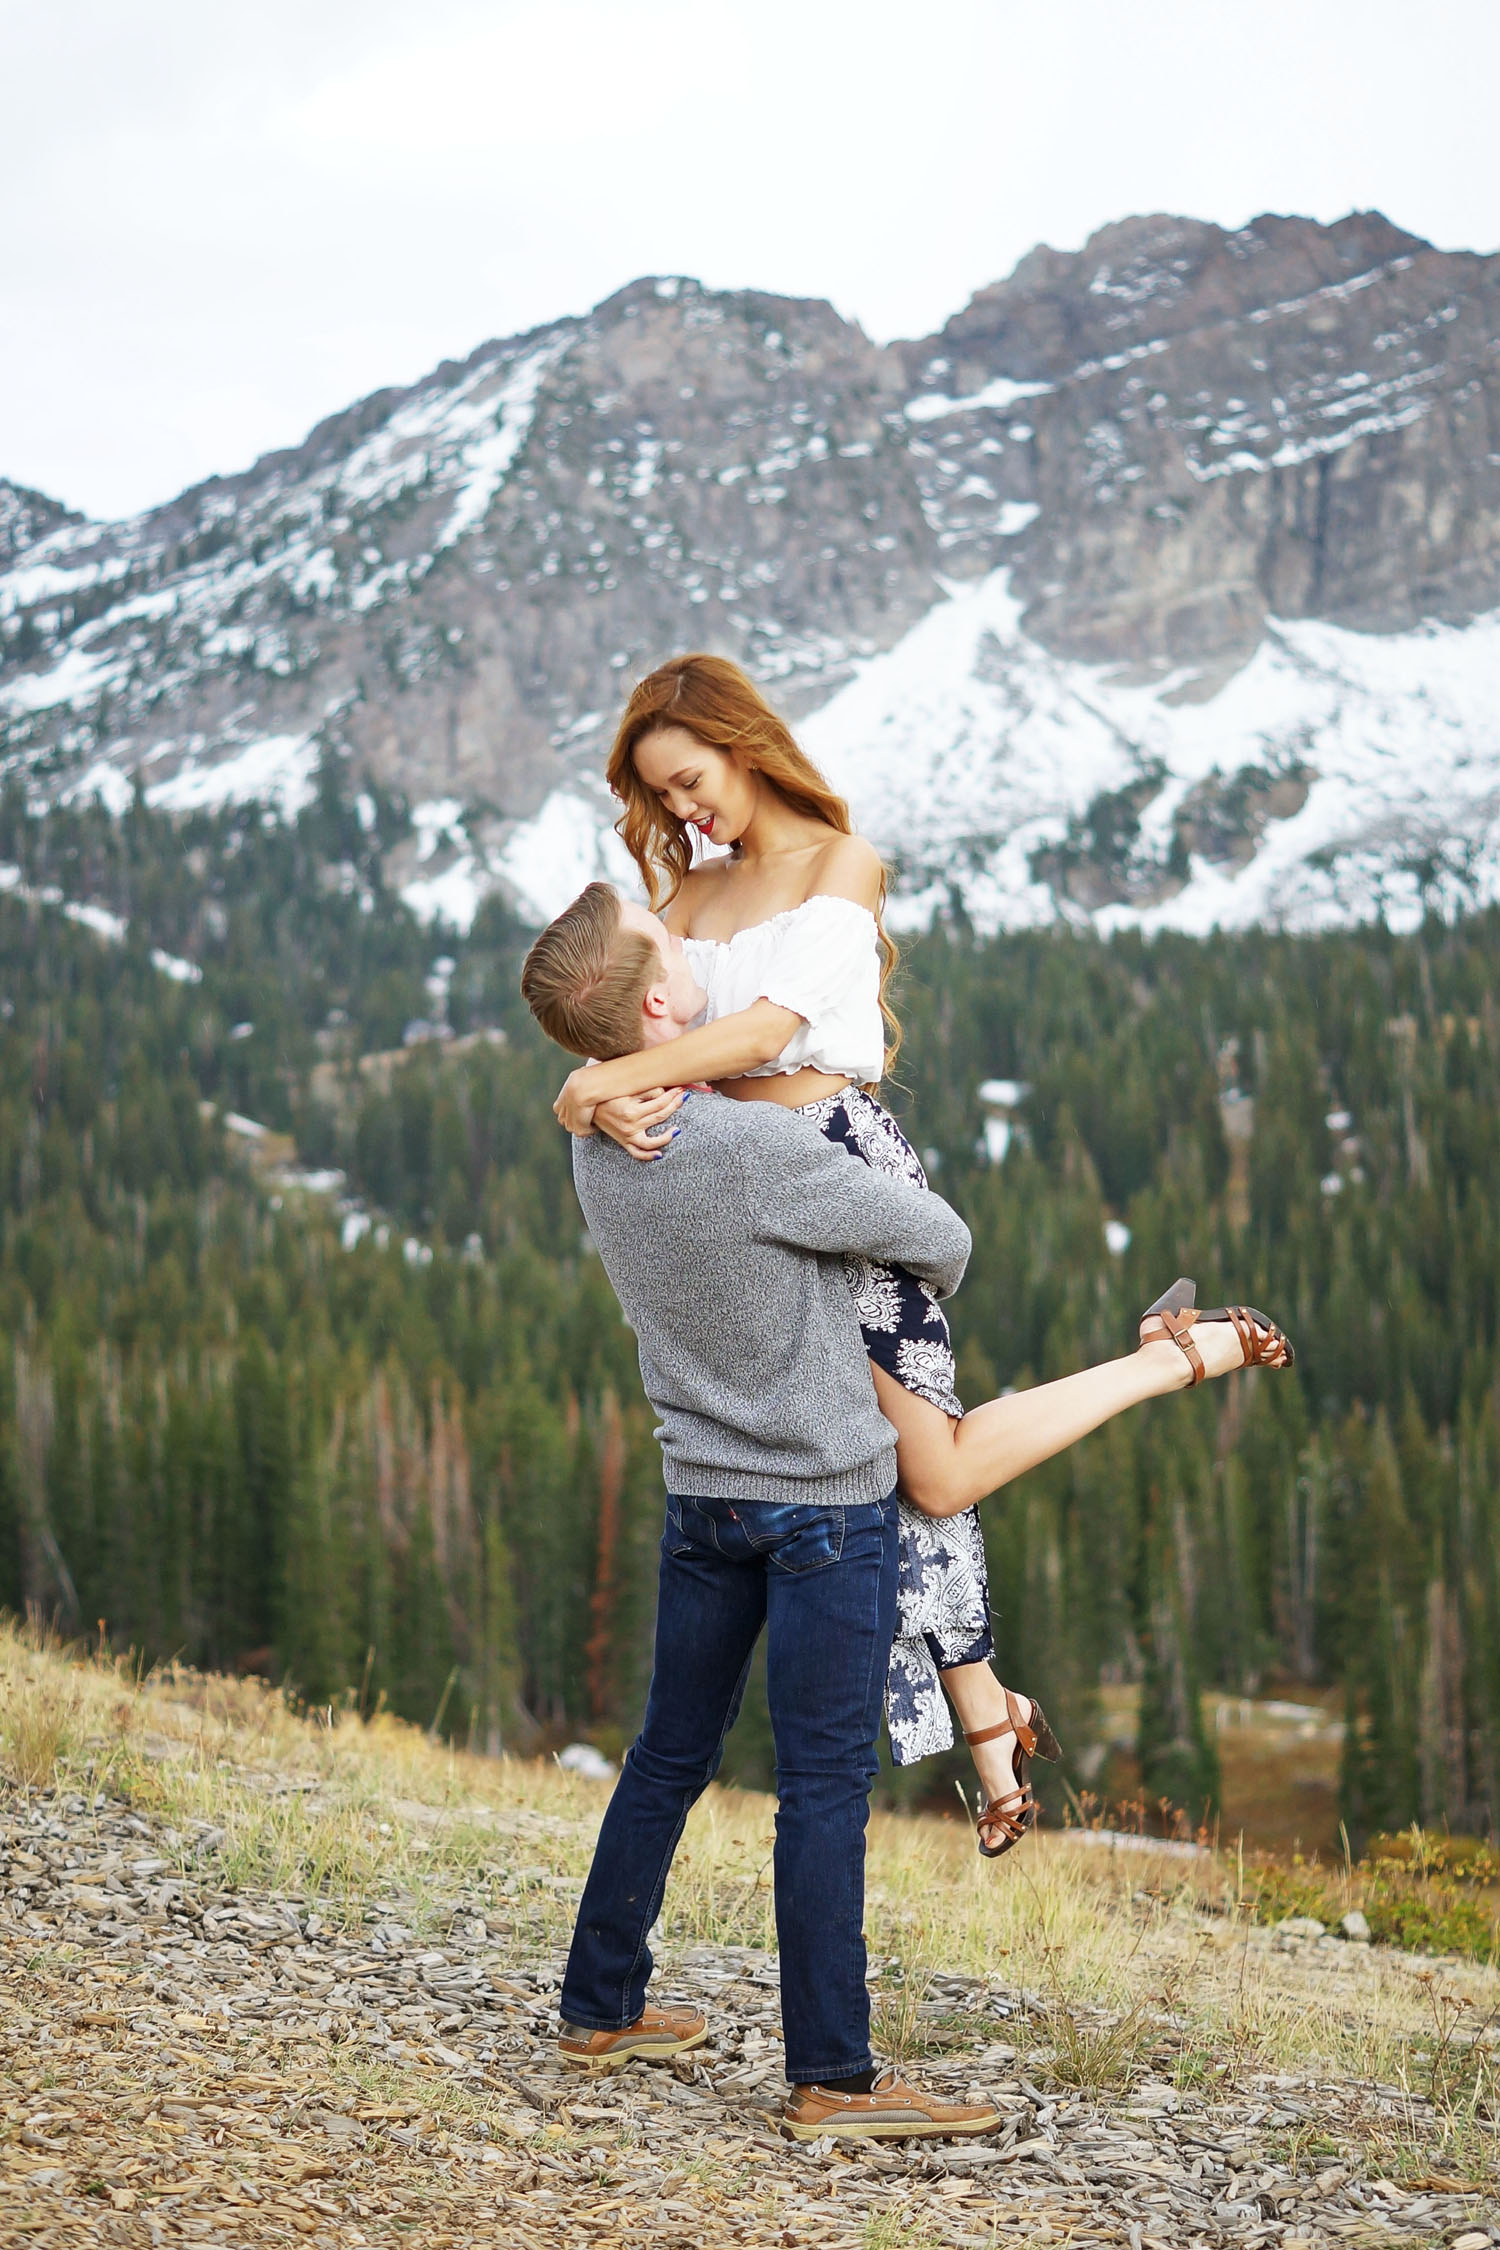 Amber_Shaw_Photography_Utah_Engagement_0005.jpg